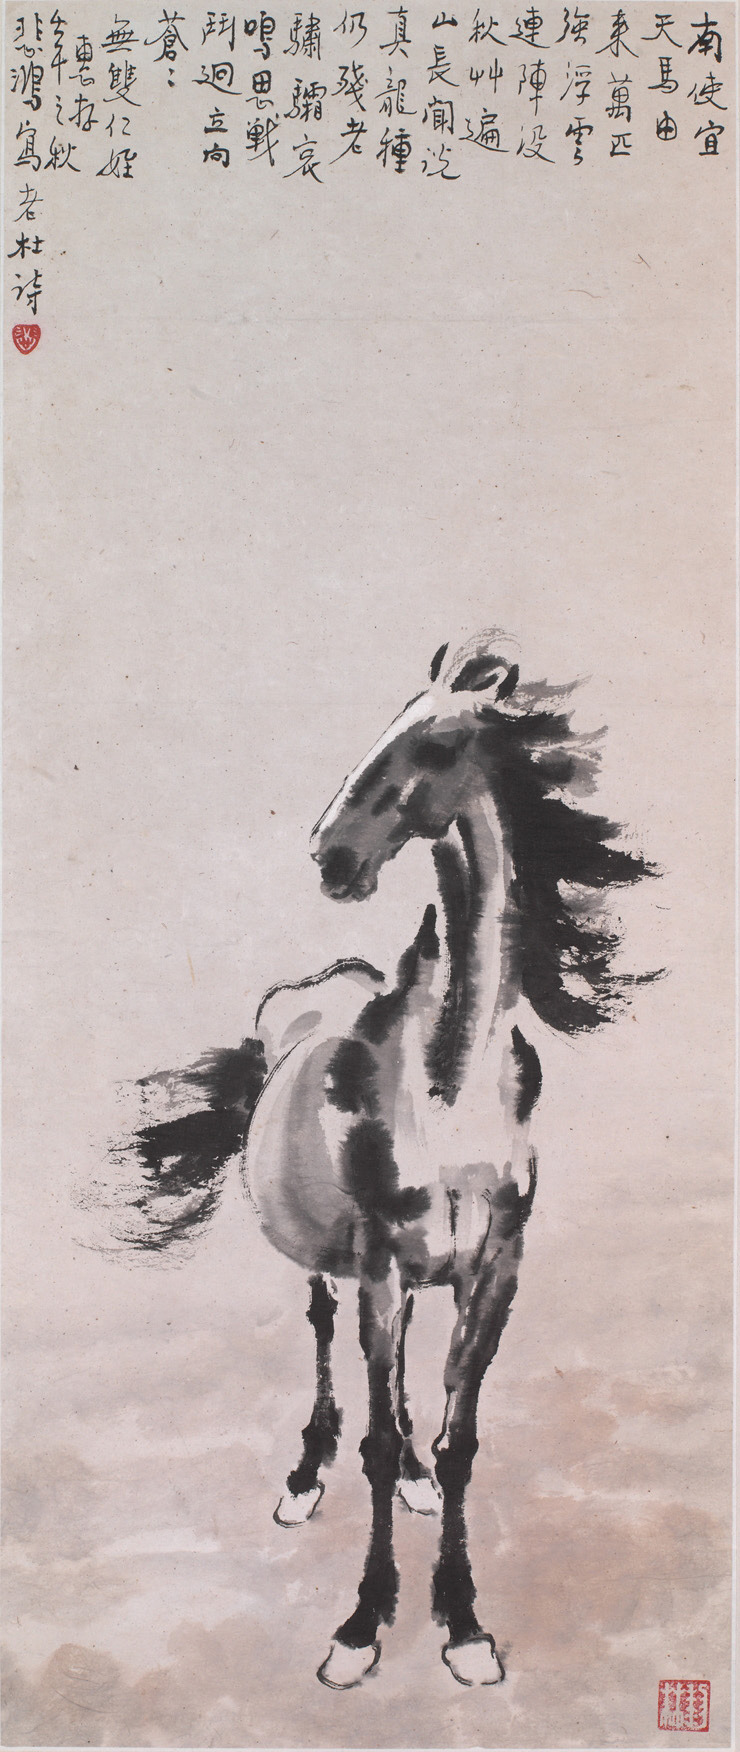 Xu Beihong - Heavenly Horse, 1942. Hanging scroll; ink on paper Translation:  Nanshi [in Gansu province] is a congenial habitat for heavenly horses;Tens of thousands of them are always stalwart.Floating clouds expand across the vast frontier;Autumn grasses grow tall over the mountains.I have heard that the pure bloodline of dragon-horsesLives on in the aging Sushuang horse.Neighing sadly longing to fight,It stands tall facing the sky.